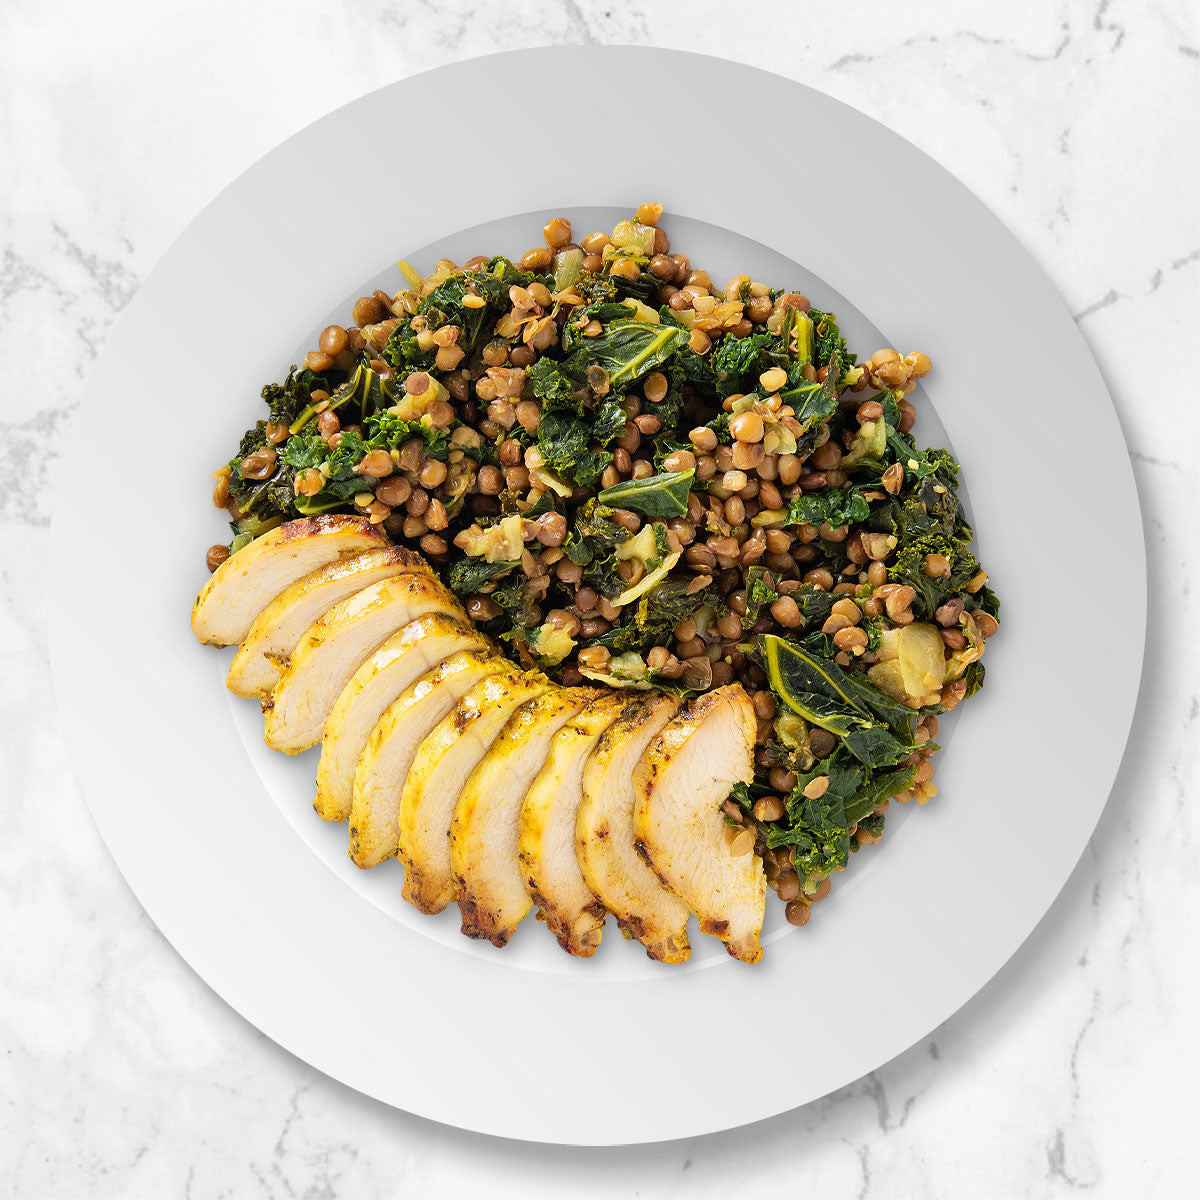 Roasted Chicken Breast with Lentils and Kale